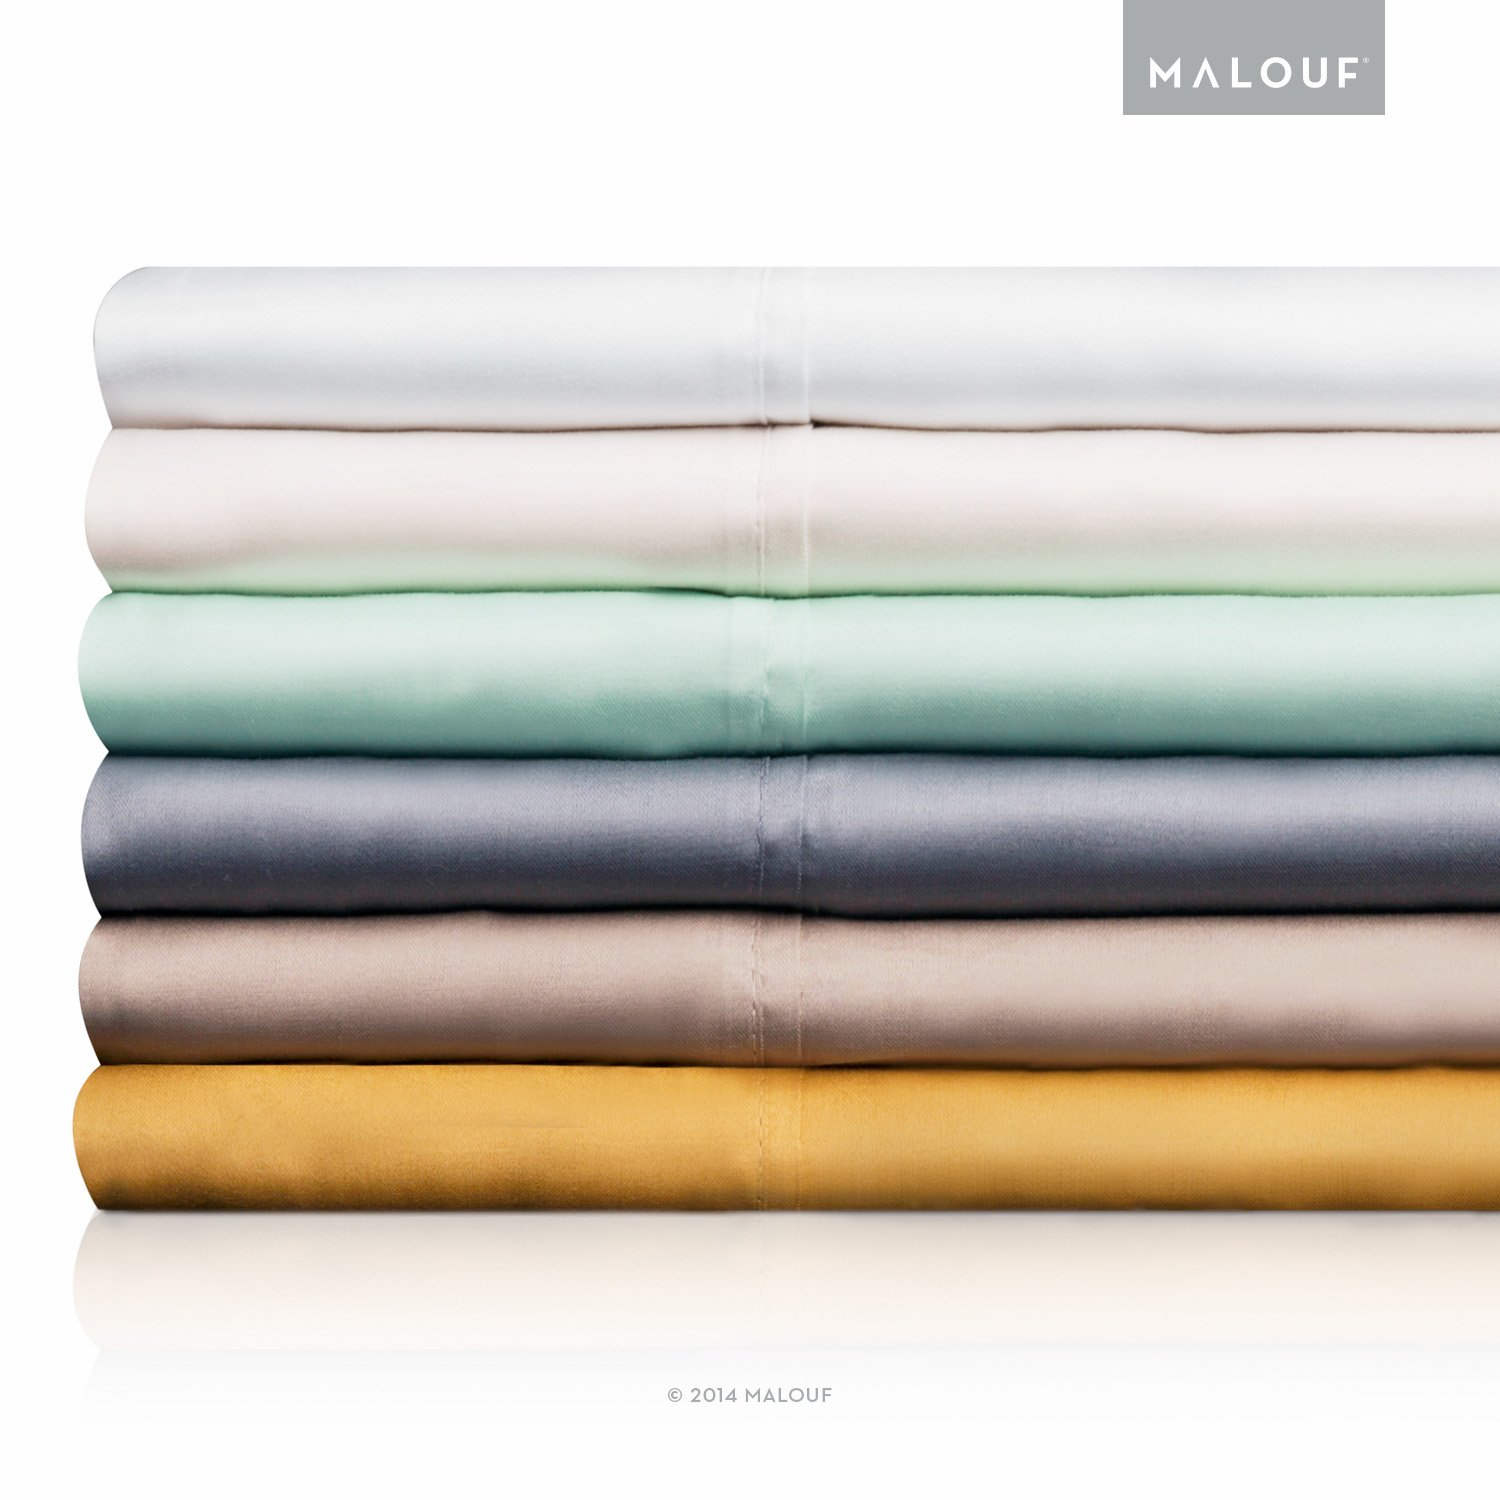 amazoncom woven tencel sheet set silky soft refreshing and ecofriendly full xl sheets harvest 4pc home u0026 kitchen - Full Xl Sheets